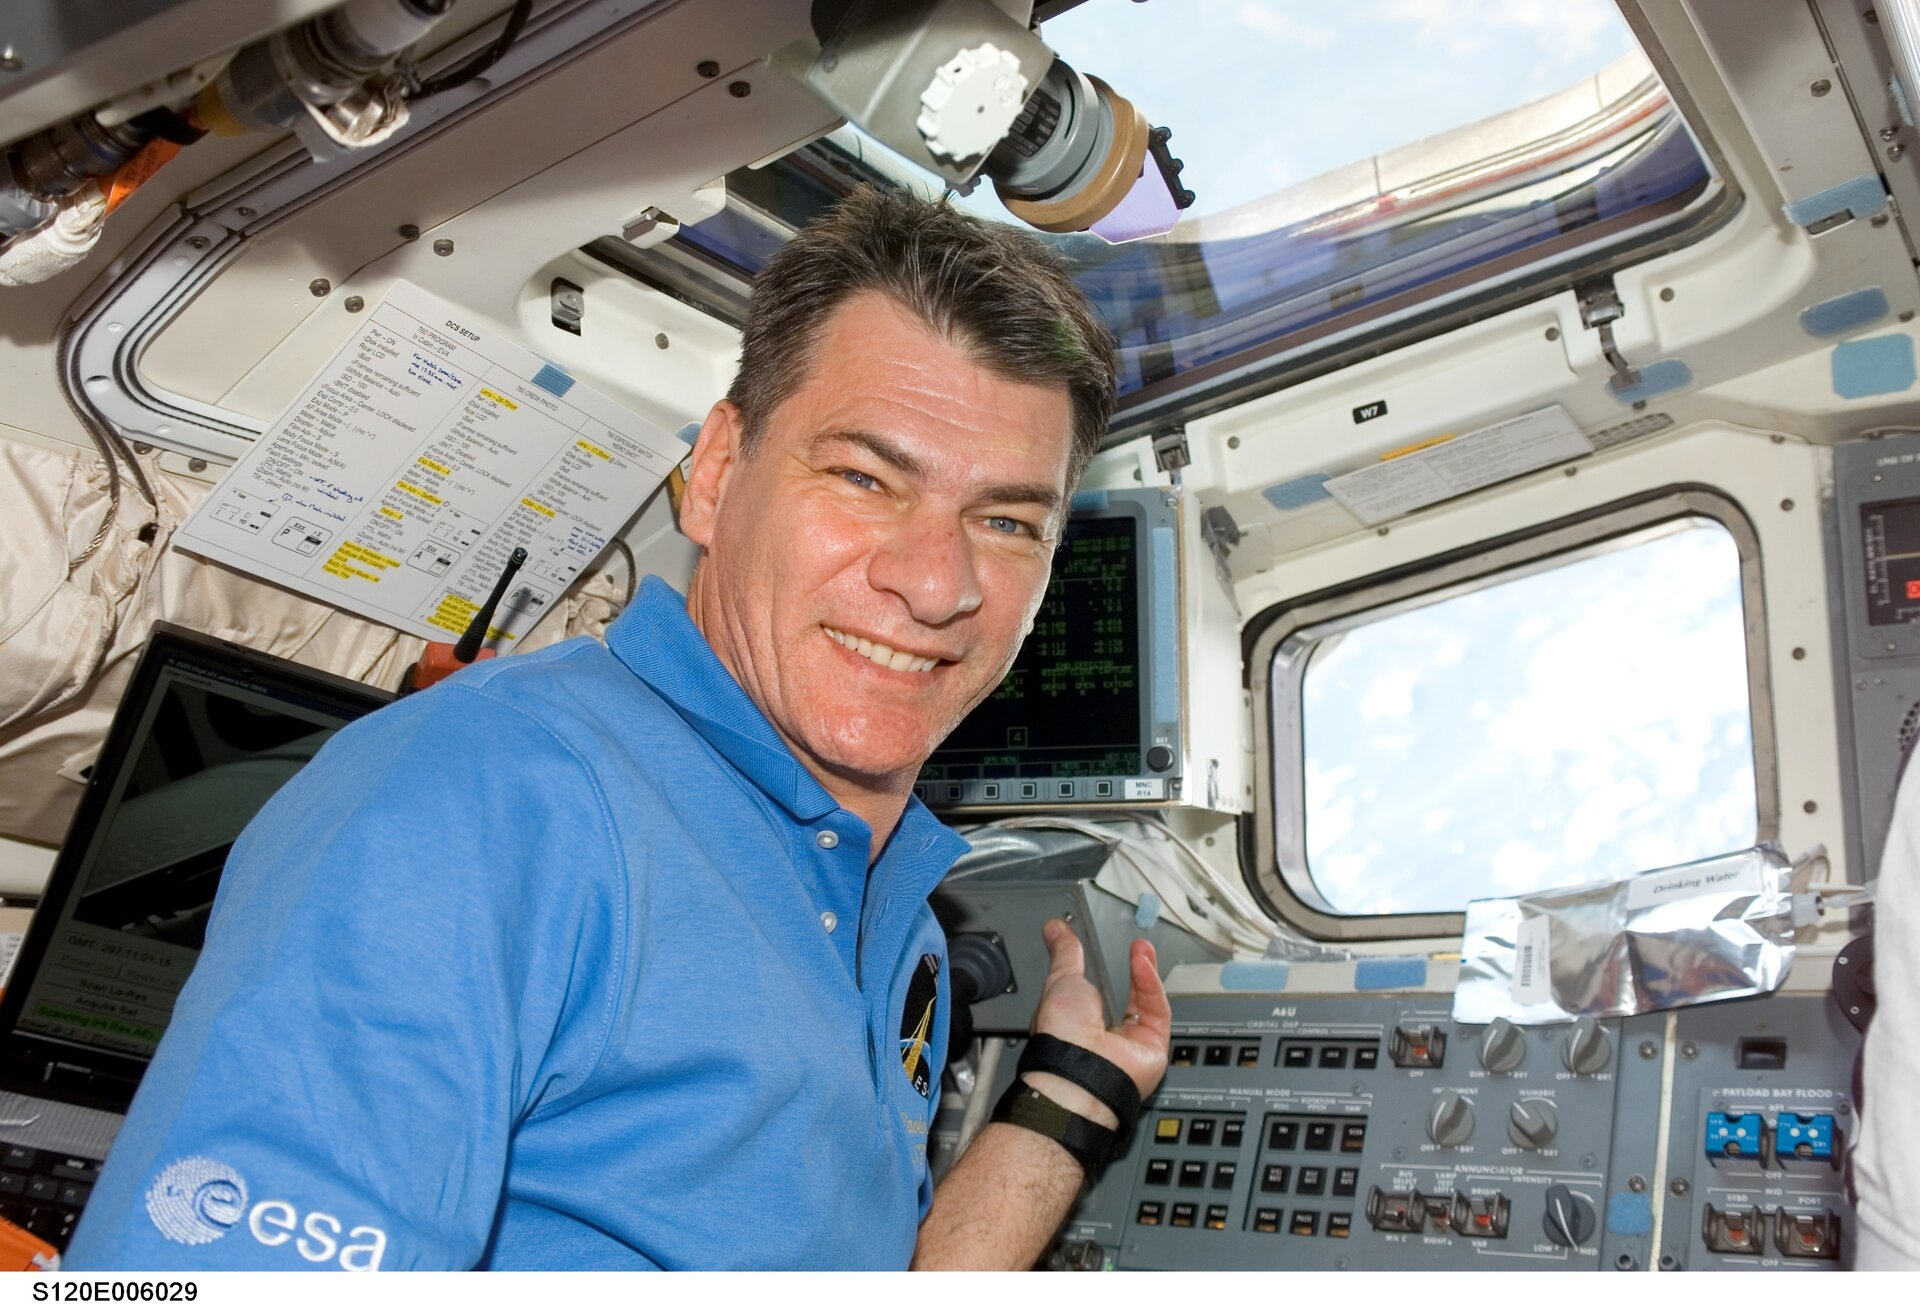 ESA astronaut Paolo Nespoli on board Discovery during Esperia Mission